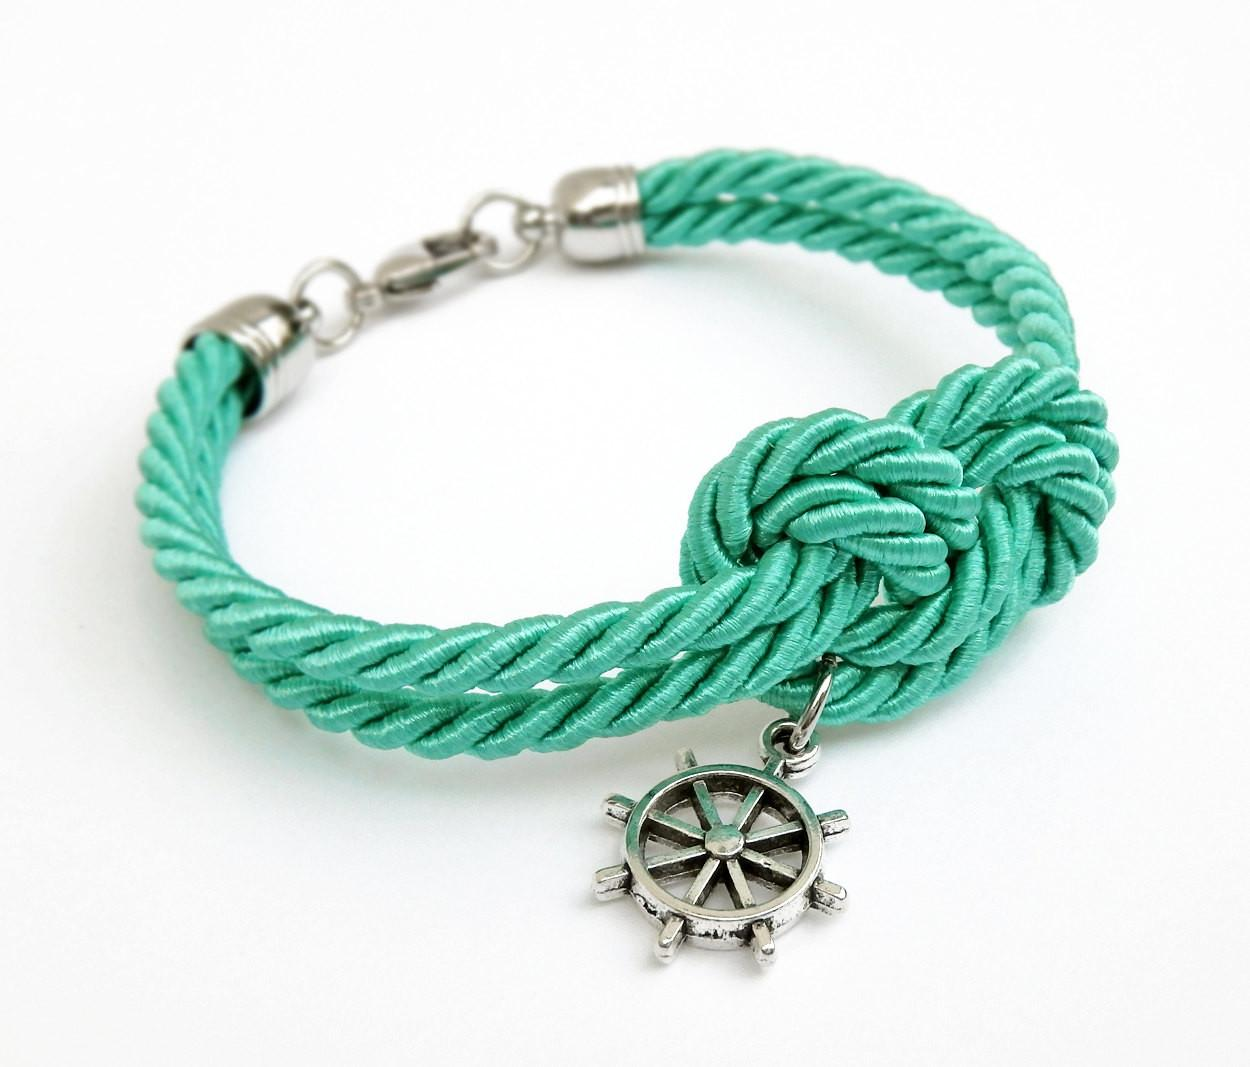 Turquoise Rope Knot Bracelet Silver Ship Wheel Charm